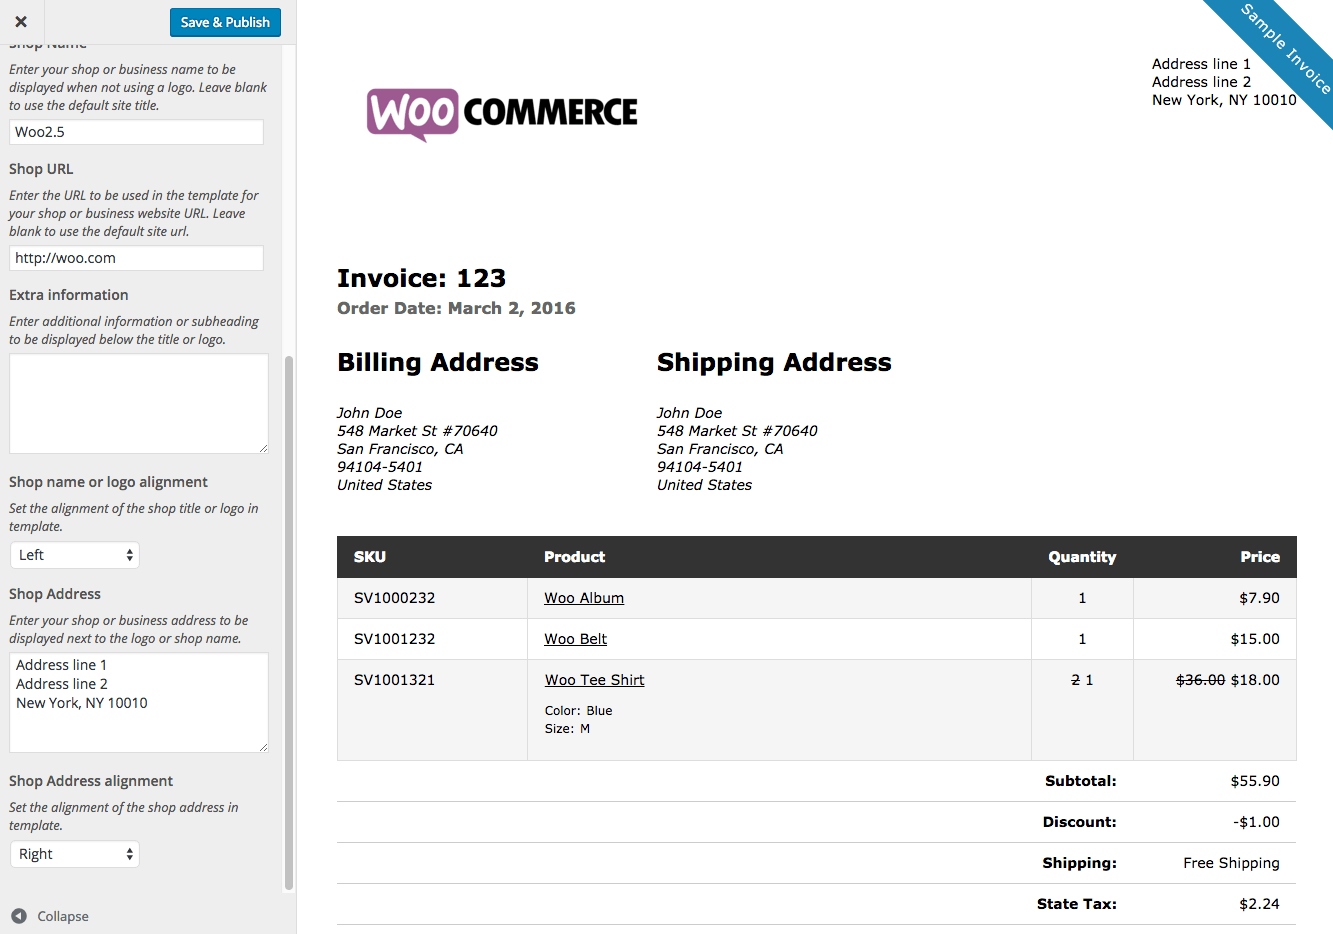 Maidofhonortoastus  Unique Woocommerce Print Invoices Amp Packing Lists  Woocommerce Docs With Inspiring Woocommerce Print Invoices  Packing Lists Customizer With Amazing Hertz Invoices Also Used Car Invoice Template In Addition Download Invoice Template Free And Invoice To Go Plus As Well As Payment Terms On An Invoice Additionally English Invoice From Docswoocommercecom With Maidofhonortoastus  Inspiring Woocommerce Print Invoices Amp Packing Lists  Woocommerce Docs With Amazing Woocommerce Print Invoices  Packing Lists Customizer And Unique Hertz Invoices Also Used Car Invoice Template In Addition Download Invoice Template Free From Docswoocommercecom